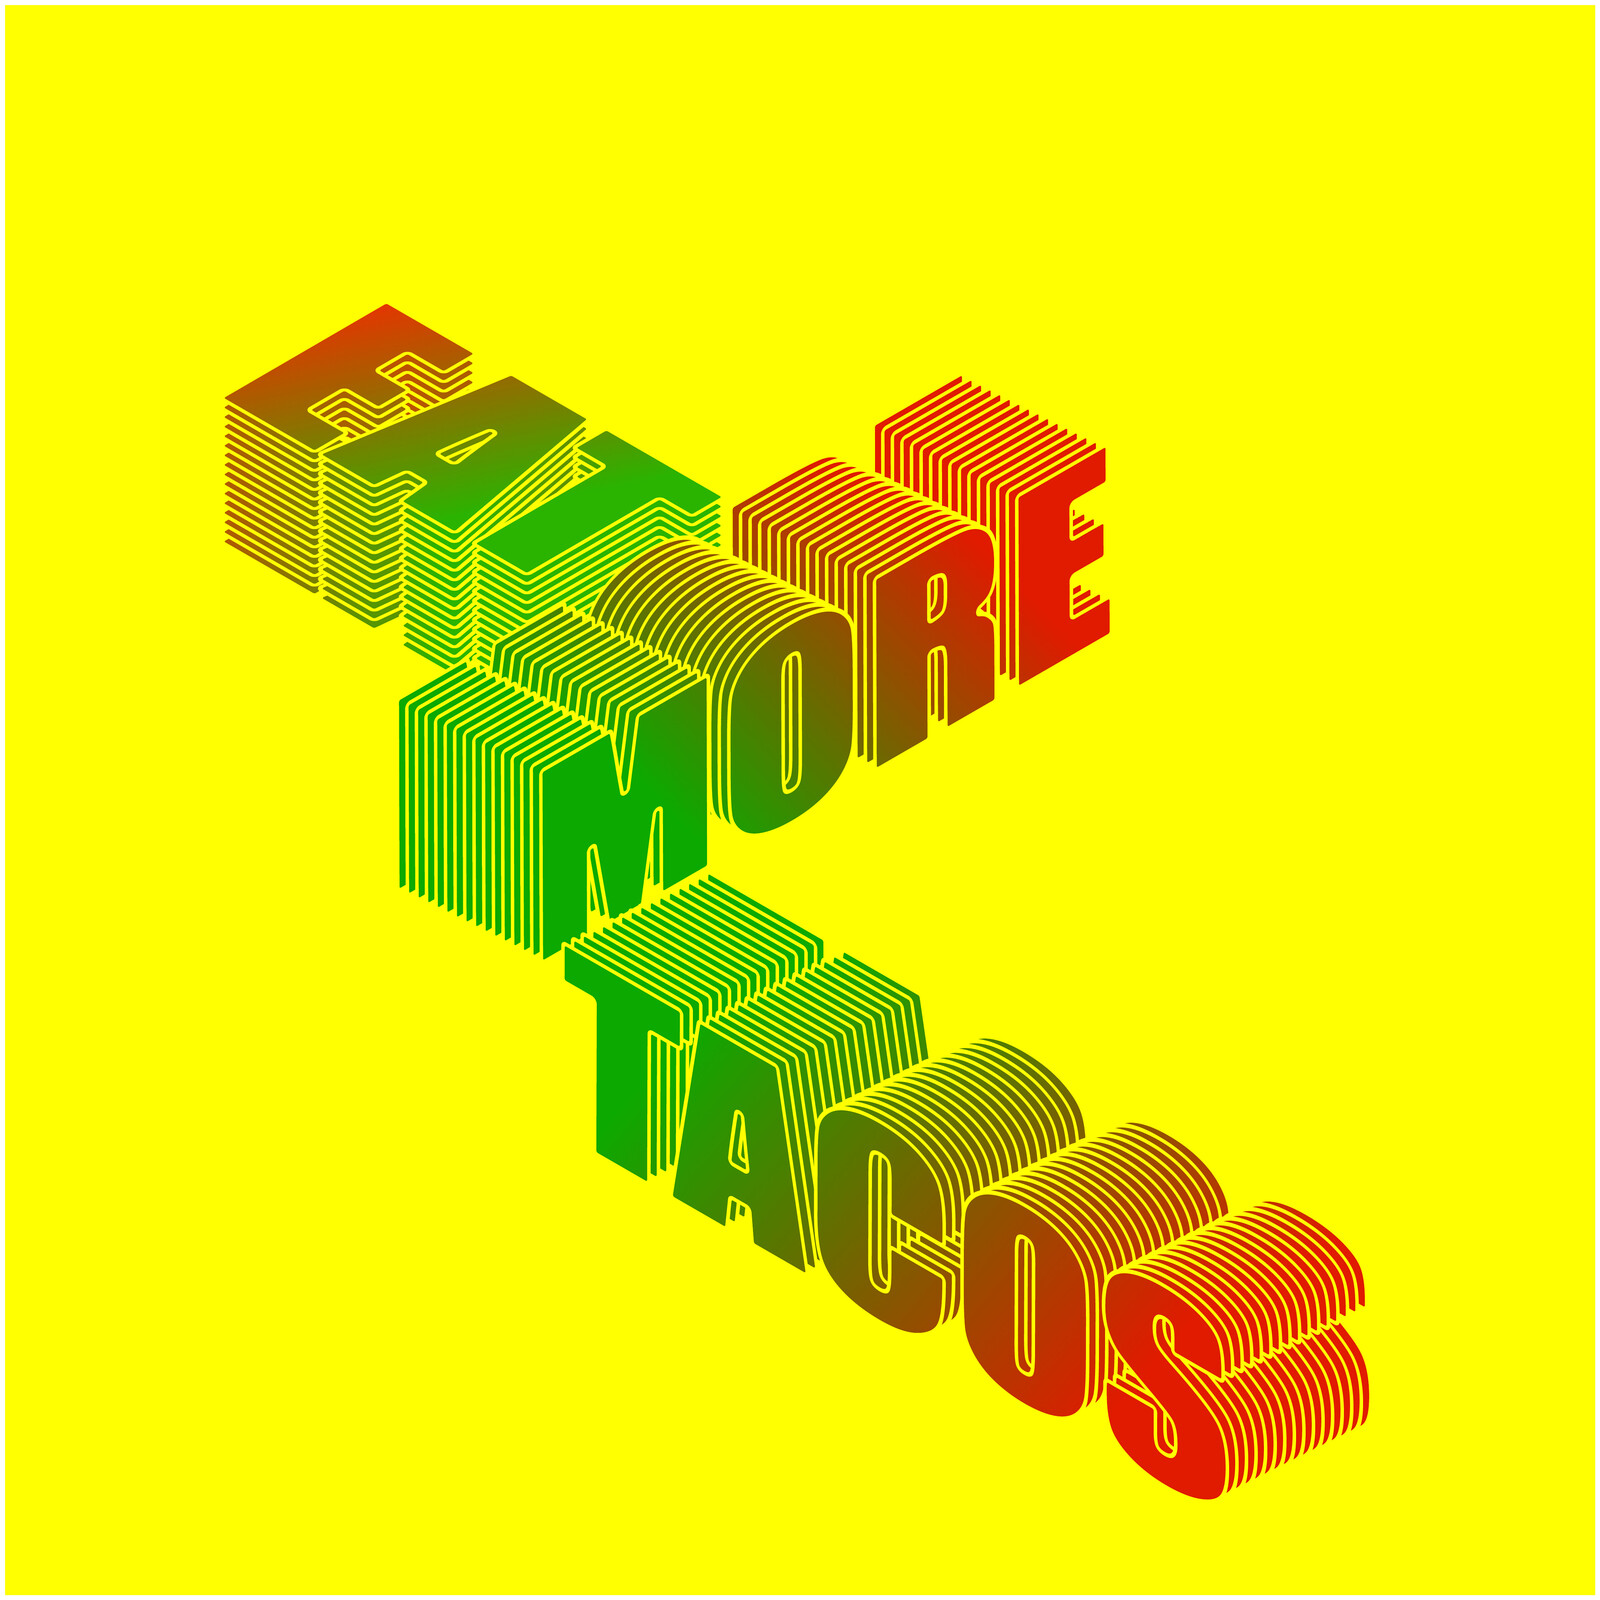 Eat More Tacos logo and shirt design idea